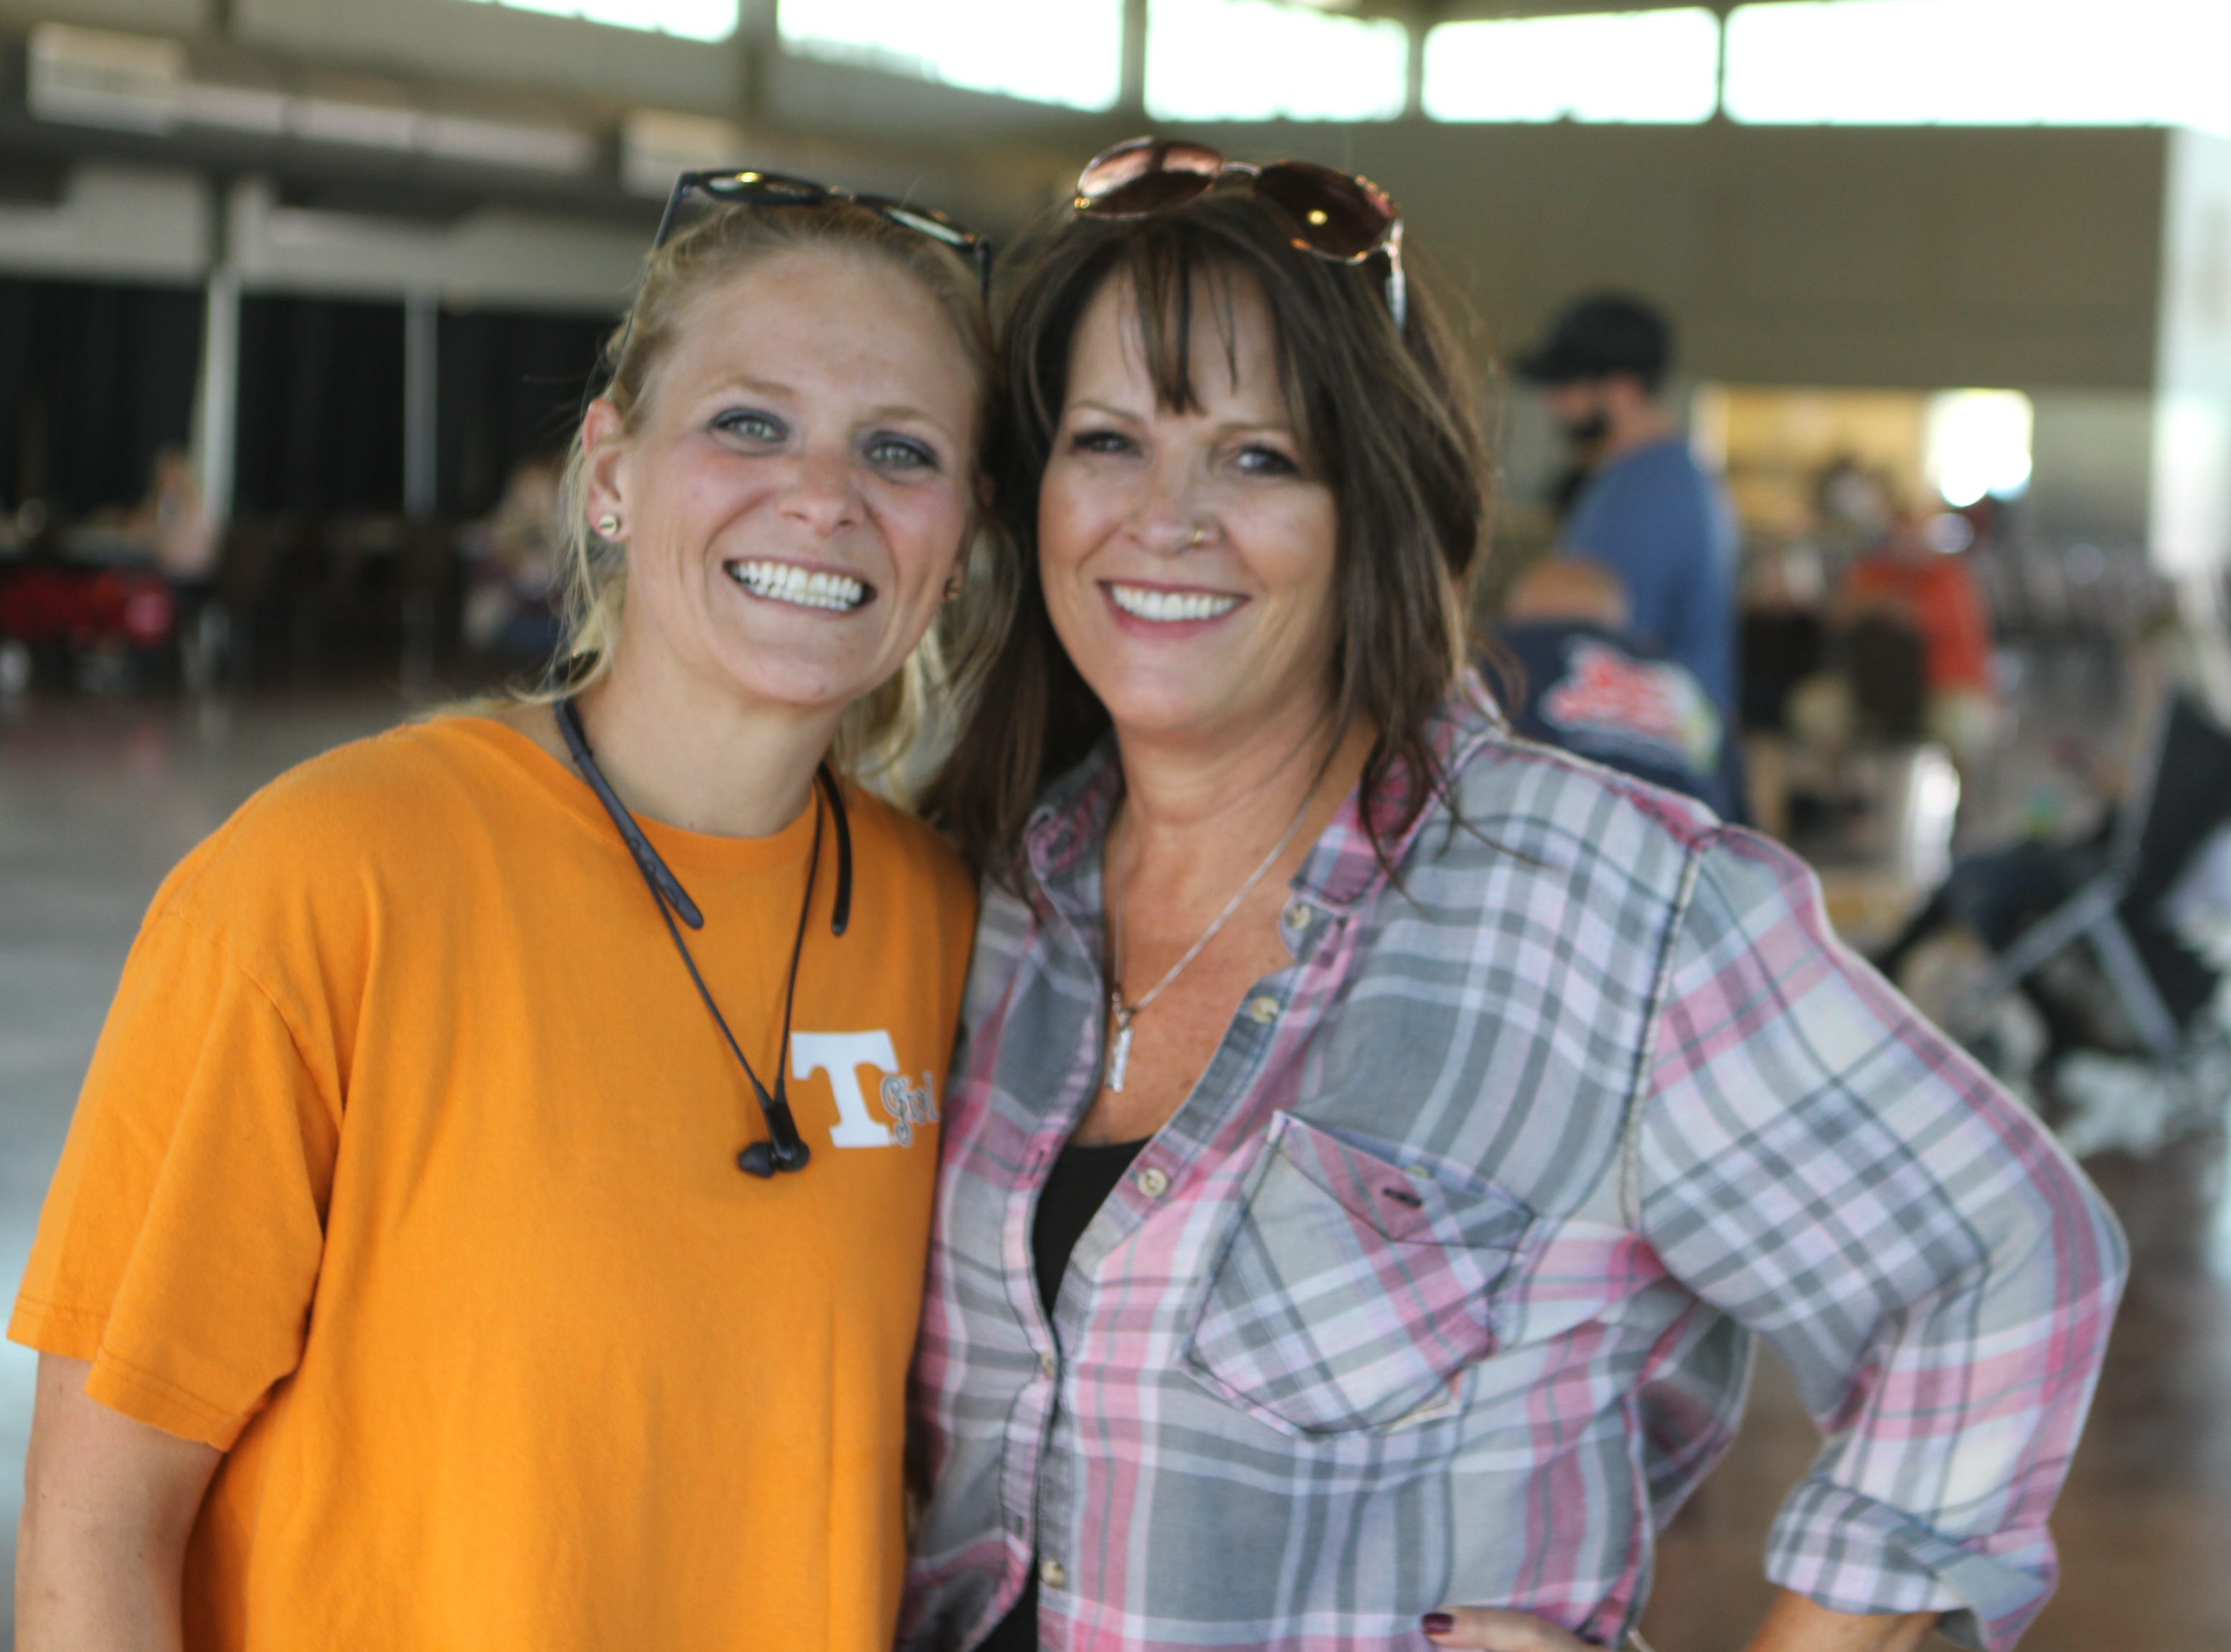 Jessica Lieberstein and Gina Meyer at the annual BBQ Bash at Liberty Park on Saturday, October 20, 2018.